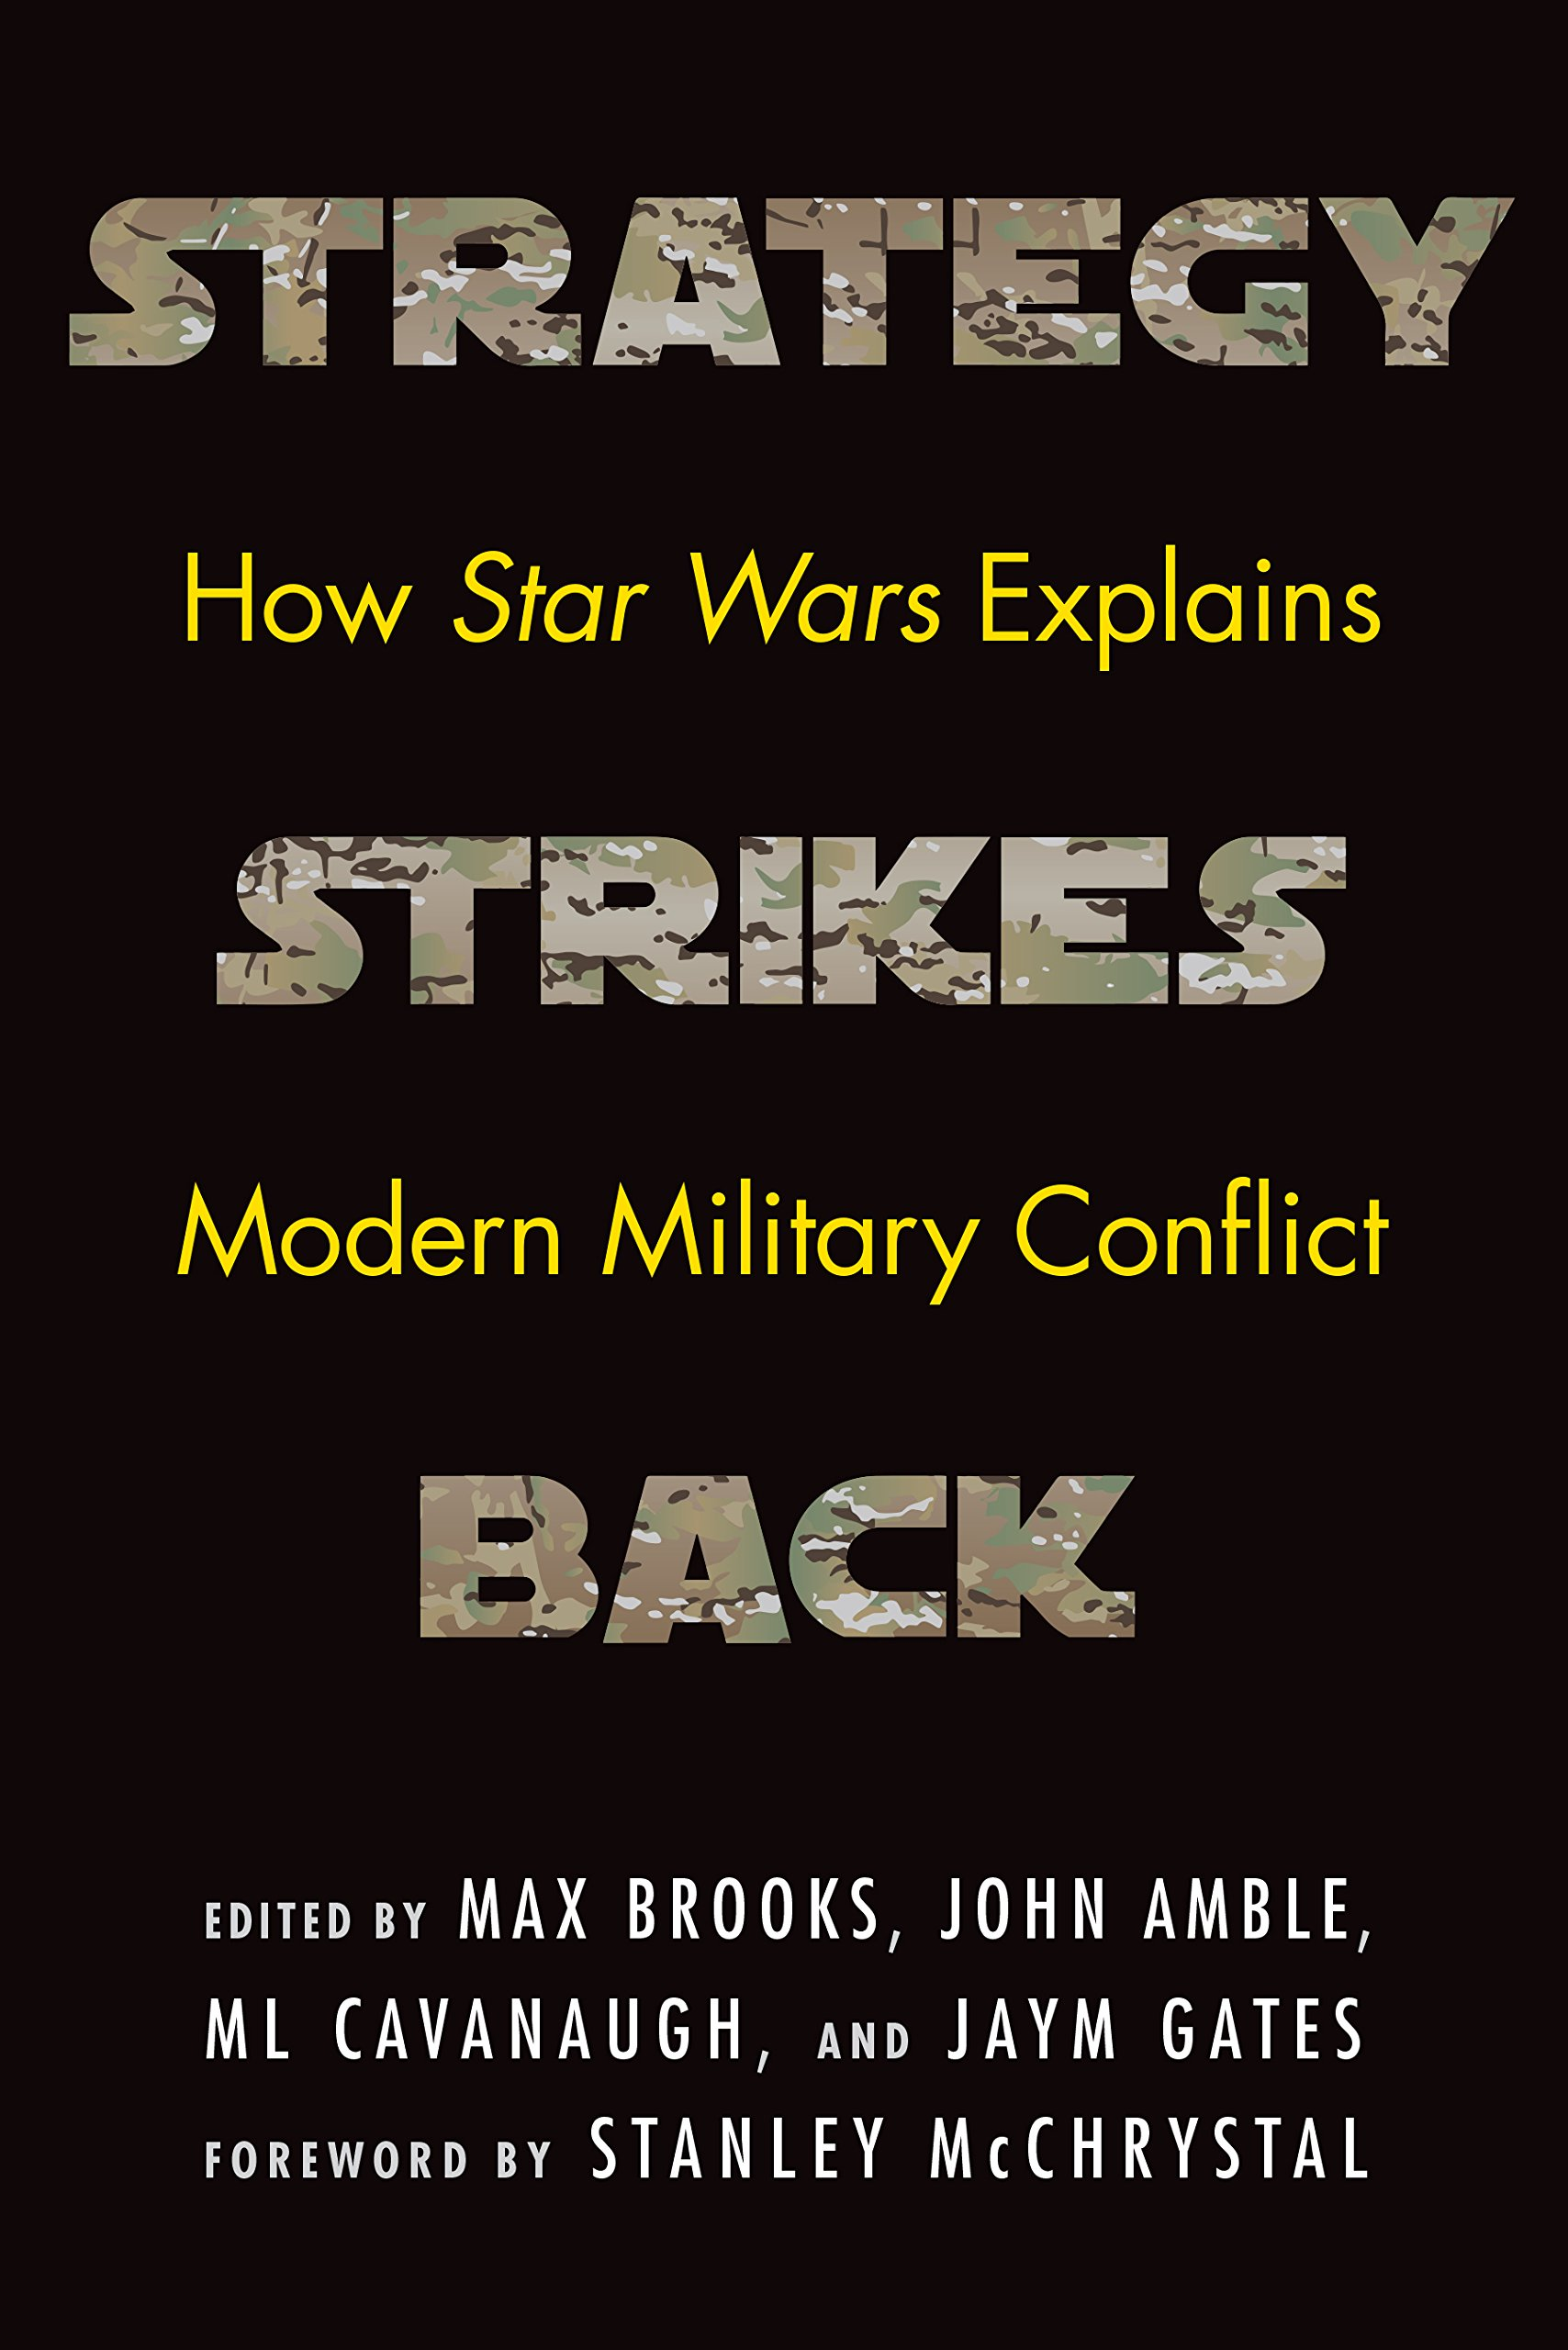 Preface (Strategy Strikes Back)